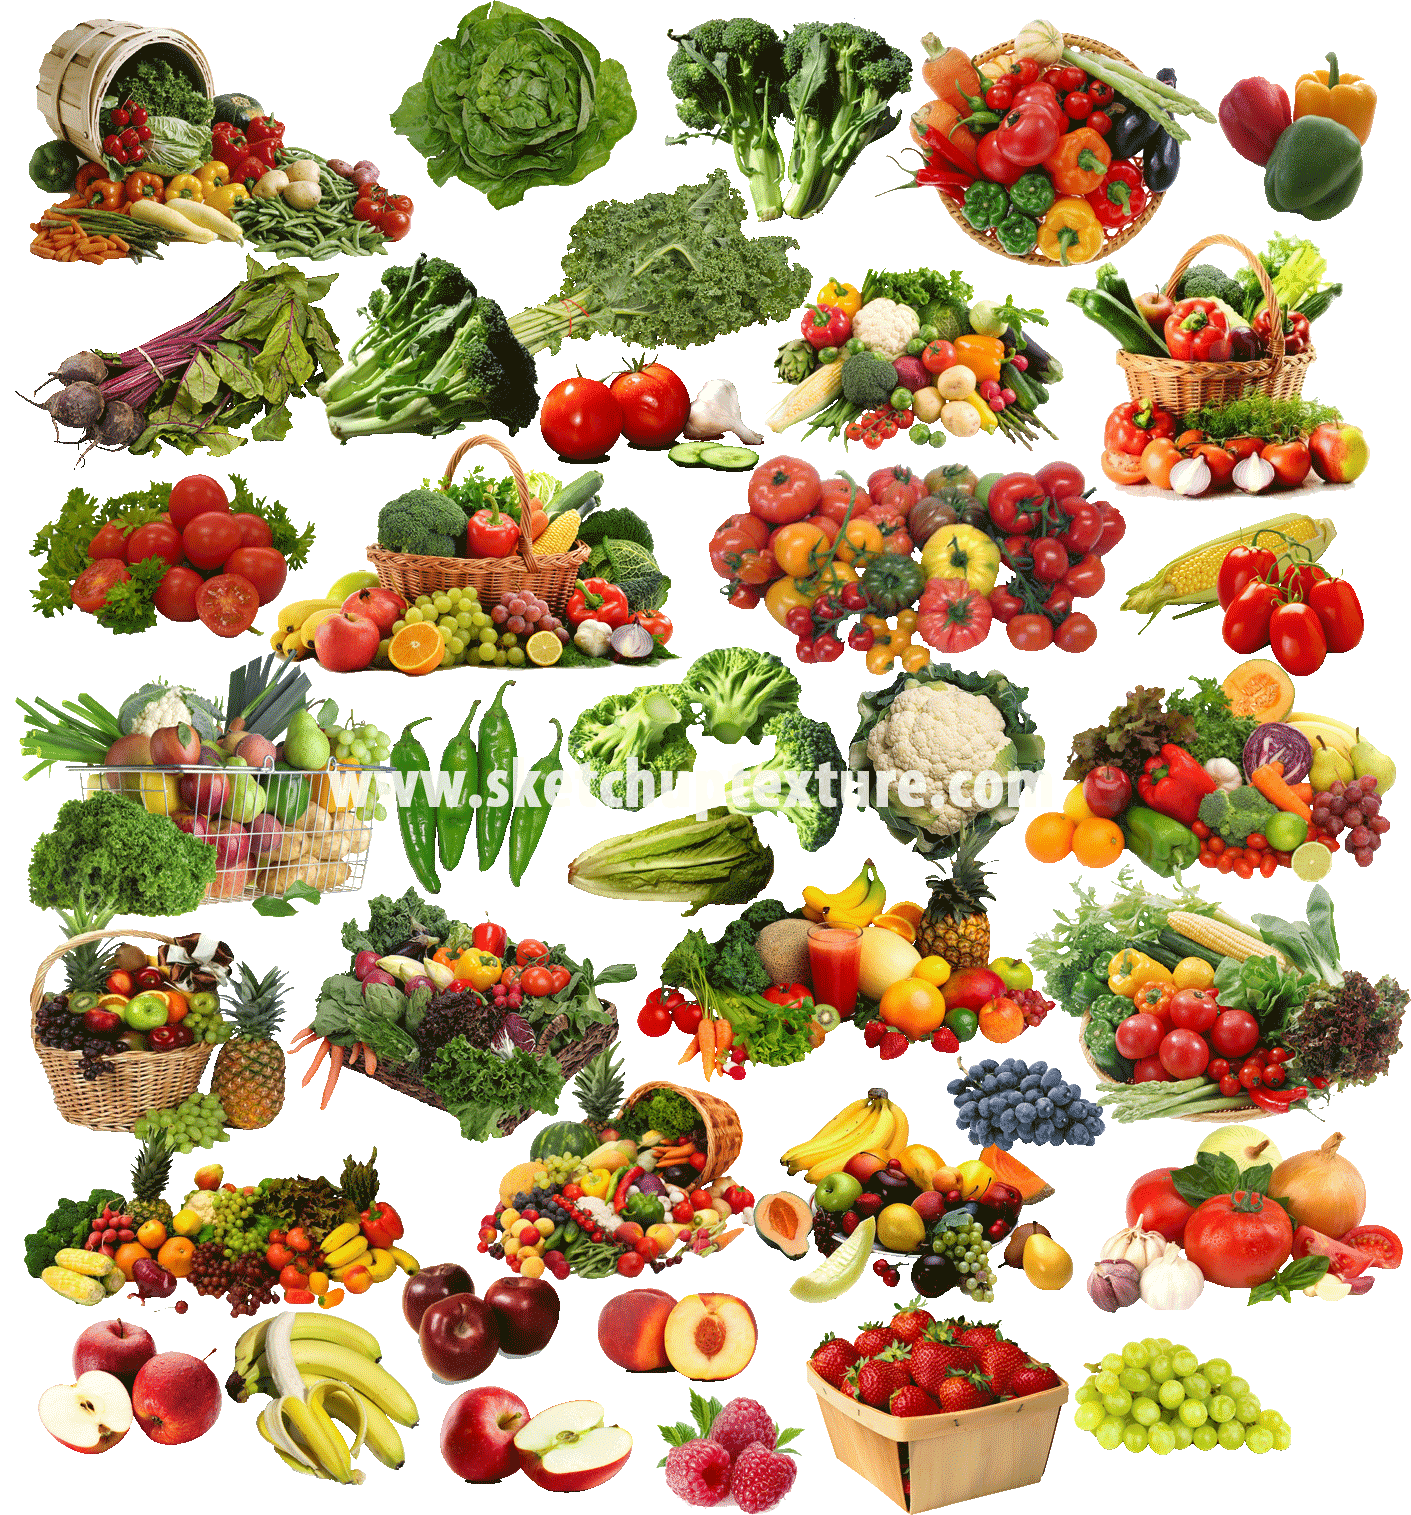 SKETCHUP TEXTURE: CUT OUT VEGETABLES AND FRUITS PACK